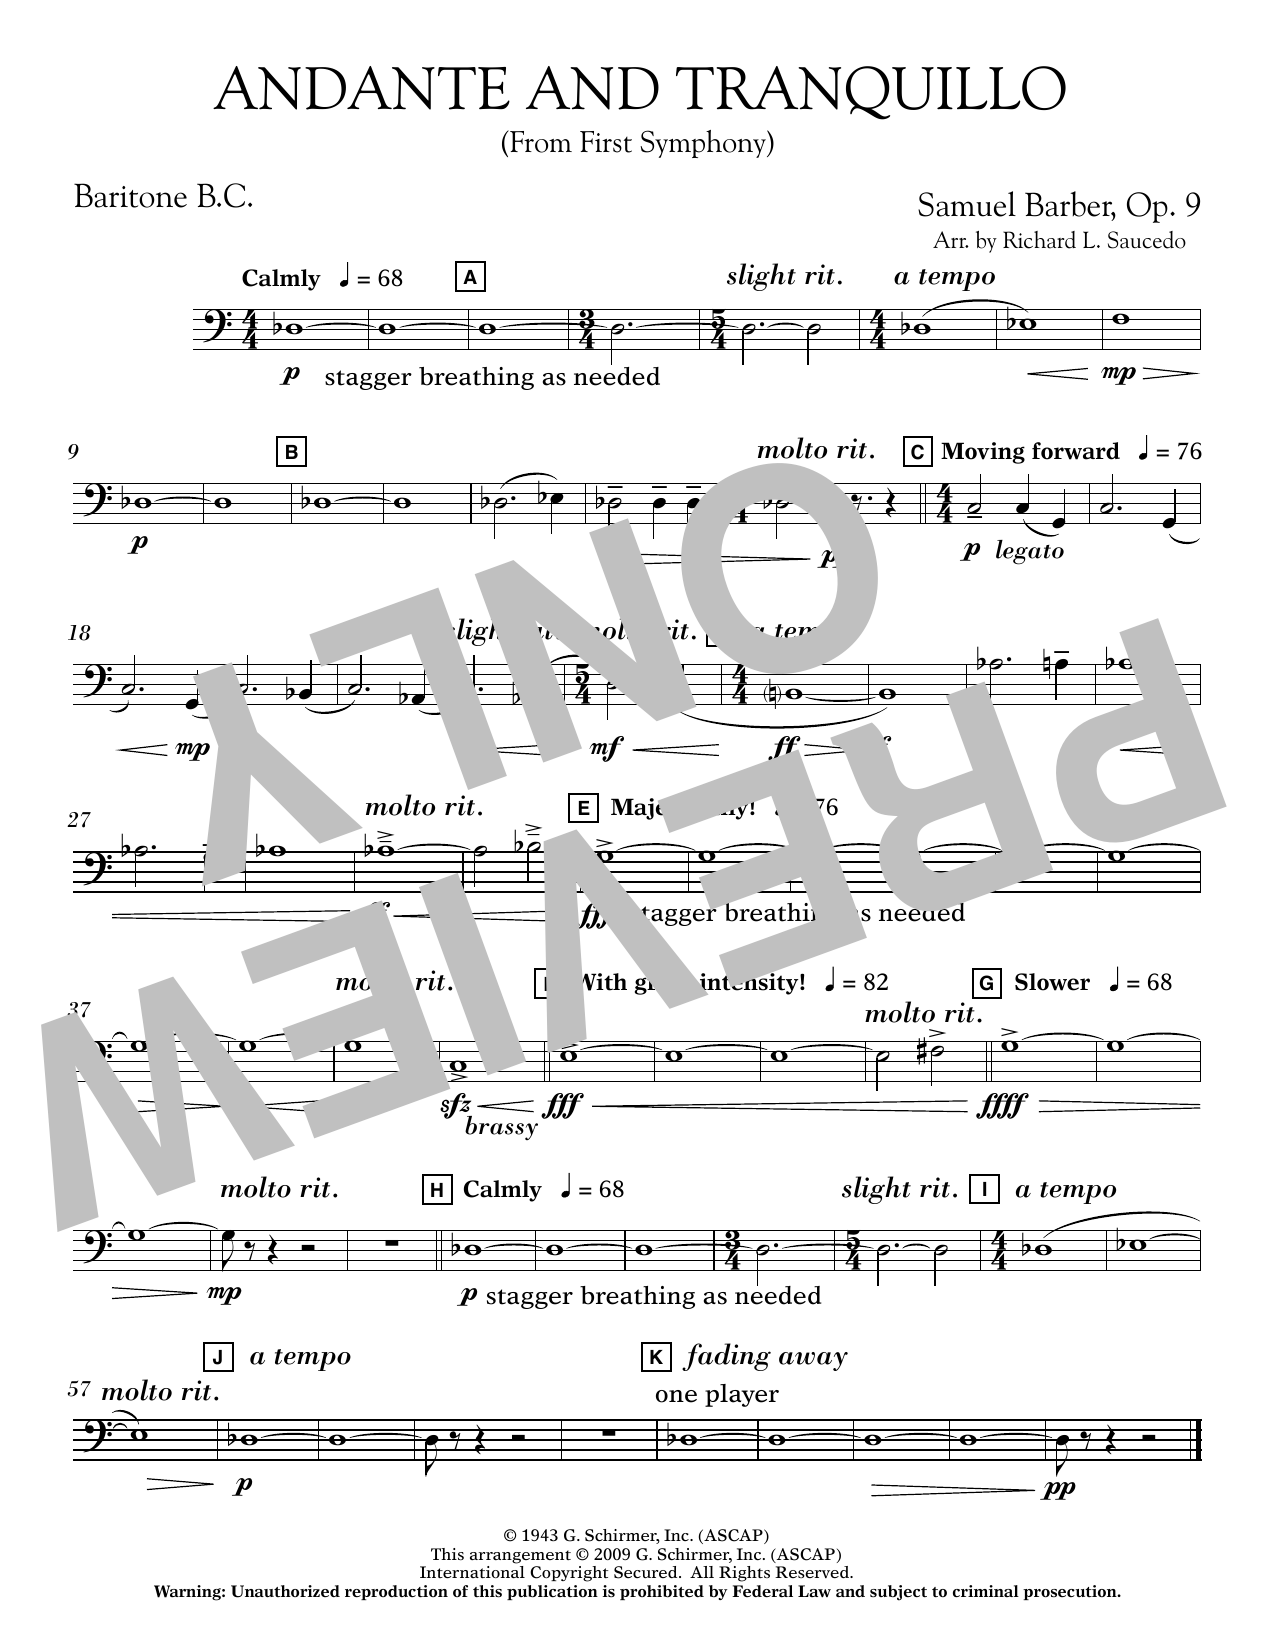 Andante and Tranquillo (from First Symphony) - Baritone B.C. Sheet Music